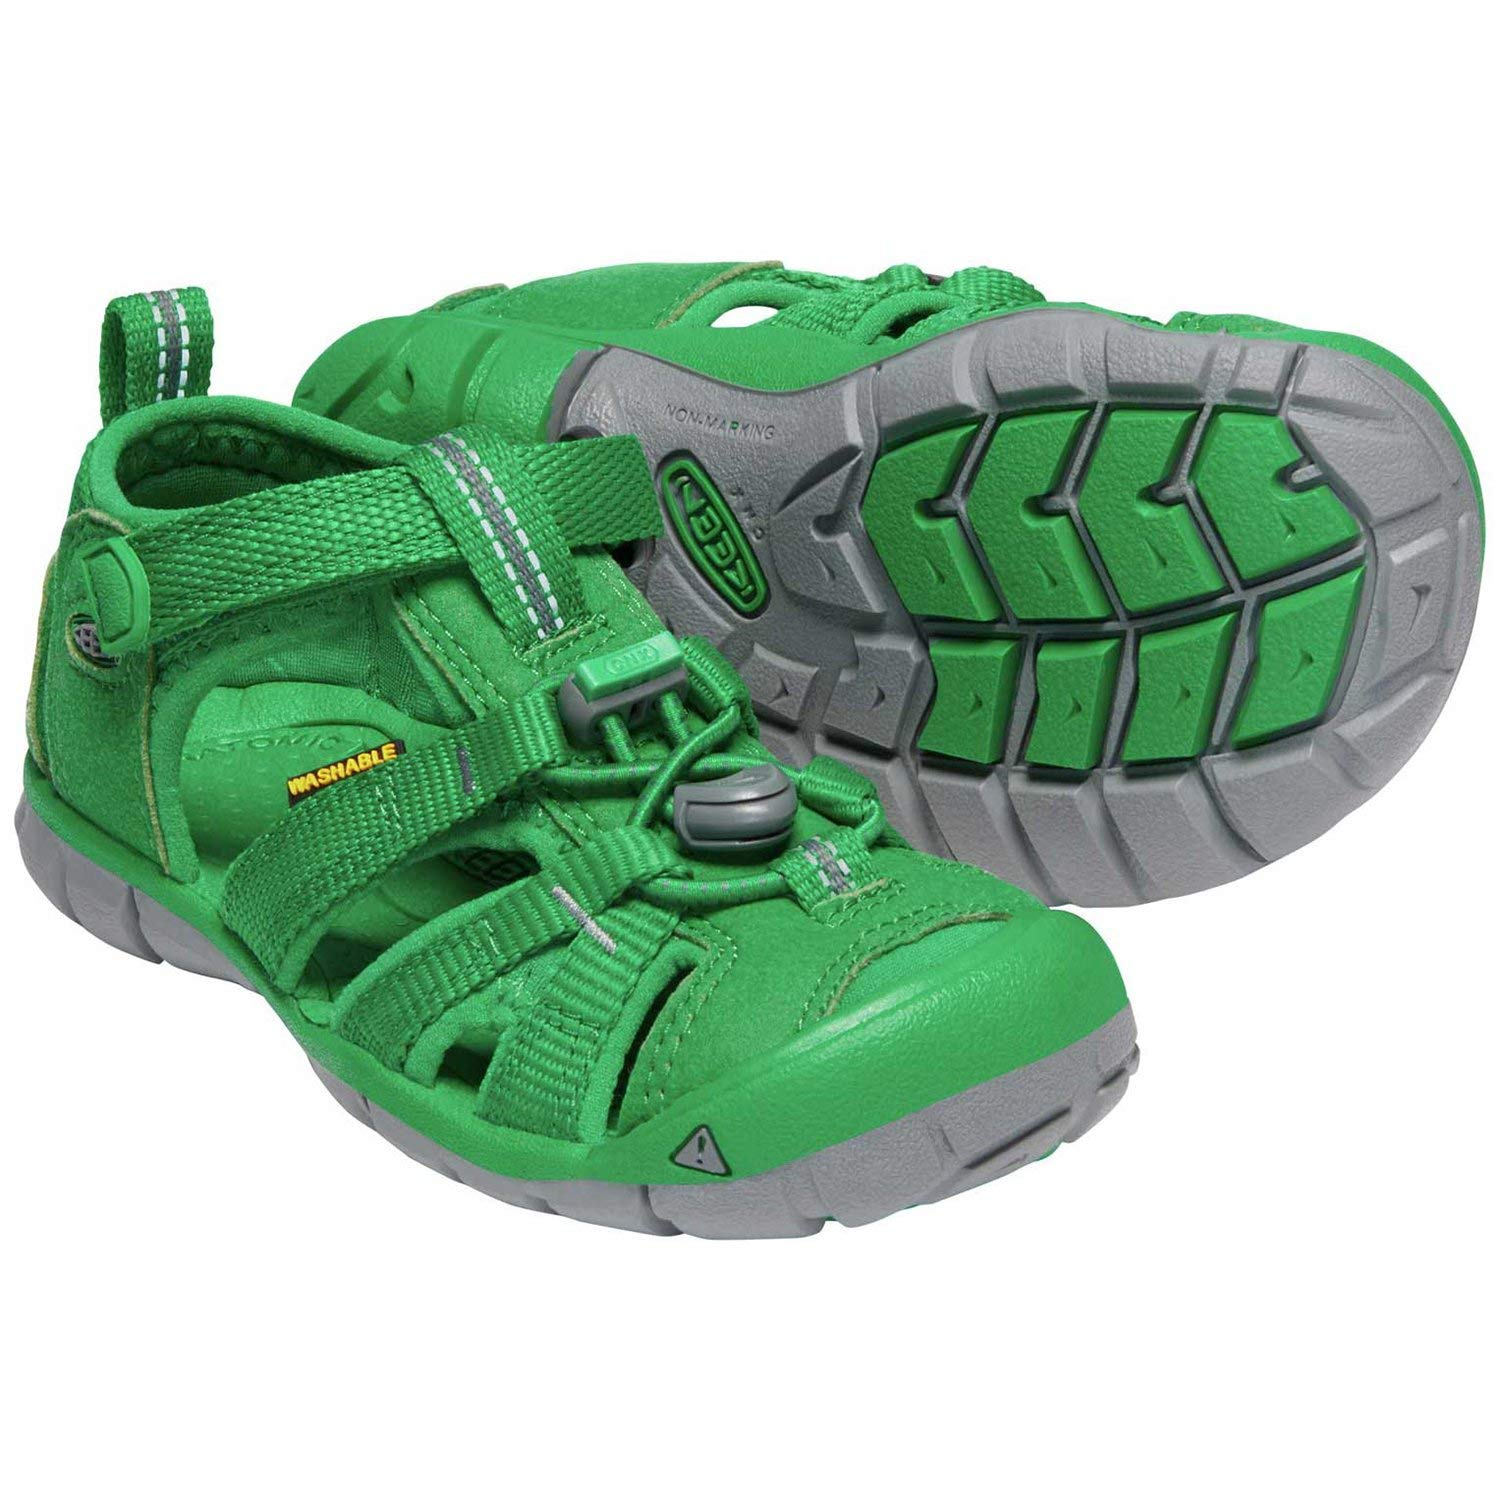 Keen - 1020680-1020680 - Color: Green - Size: 11.0 by Keen (Image #4)